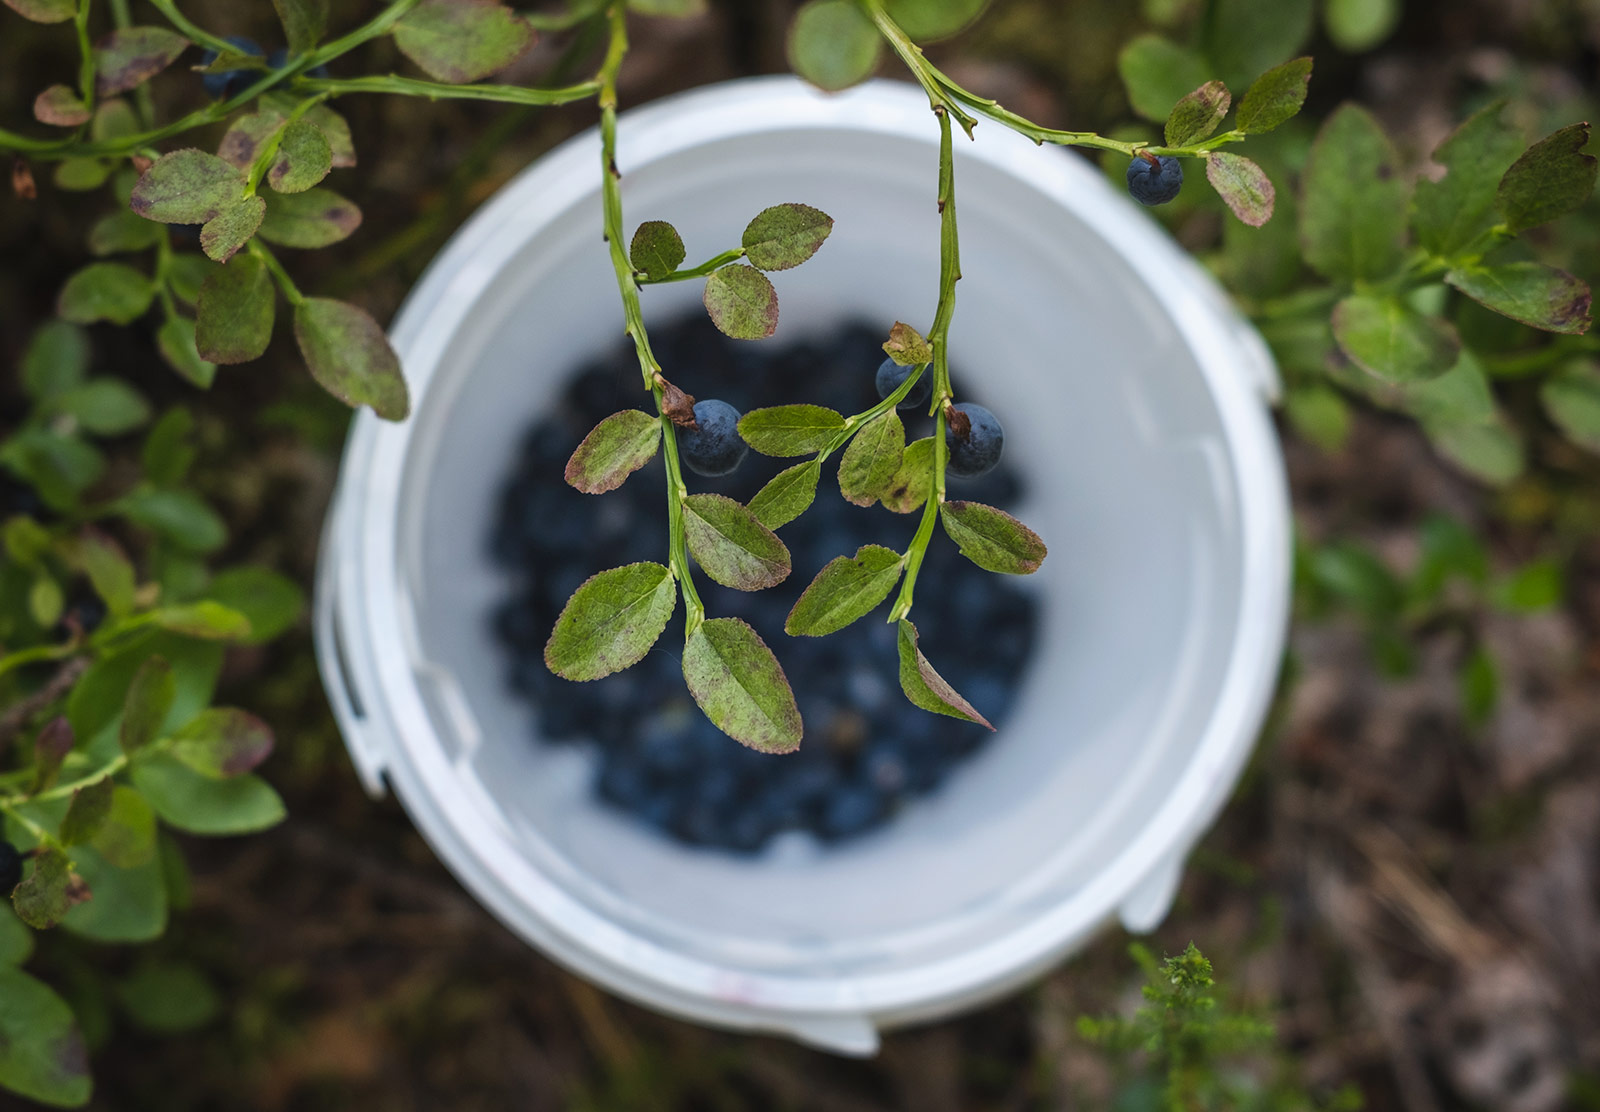 Closeup of leaves and berries